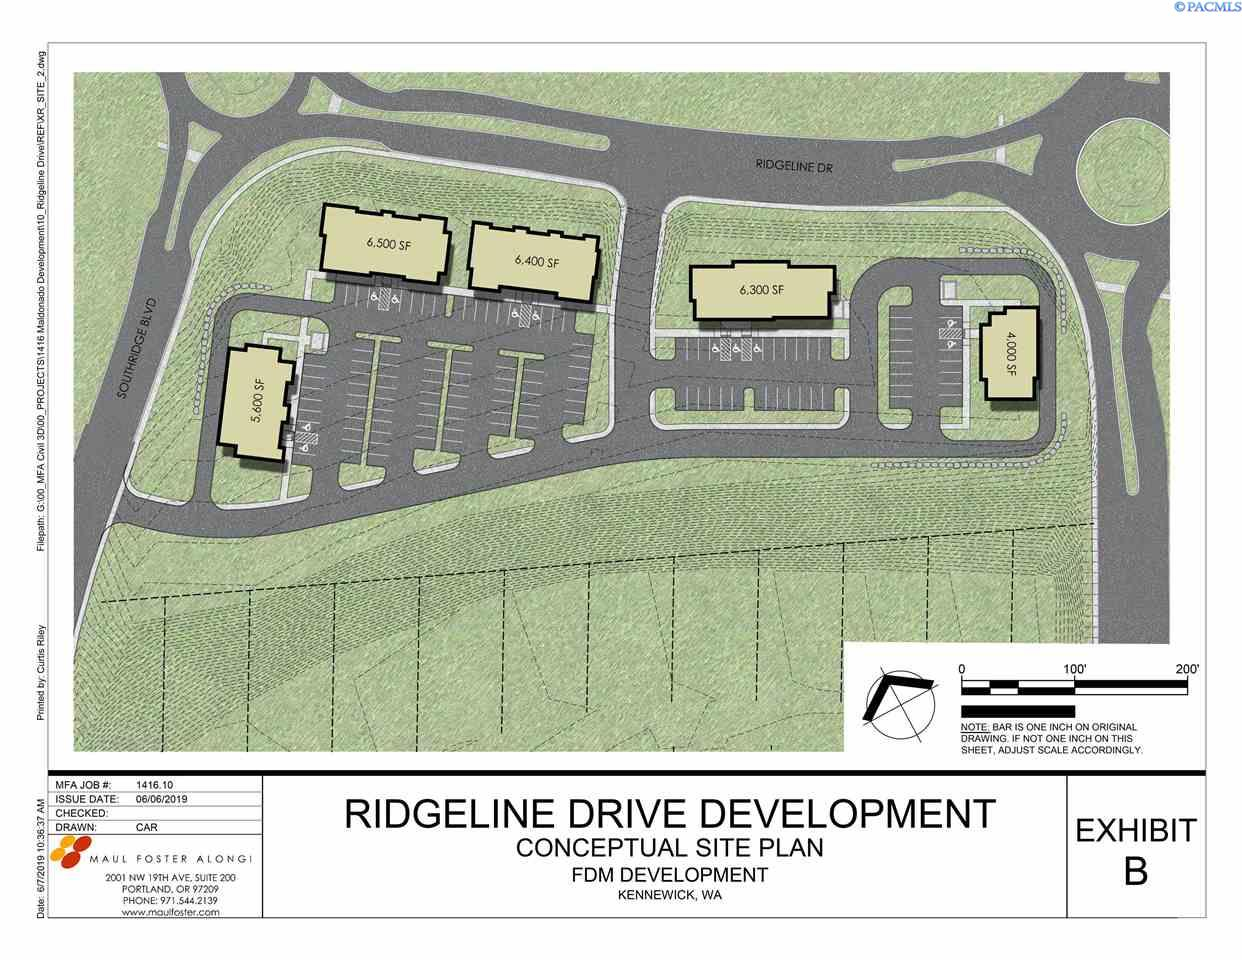 Land / Lots for Sale at 5603 Ridgeline Drive Kennewick, Washington United States